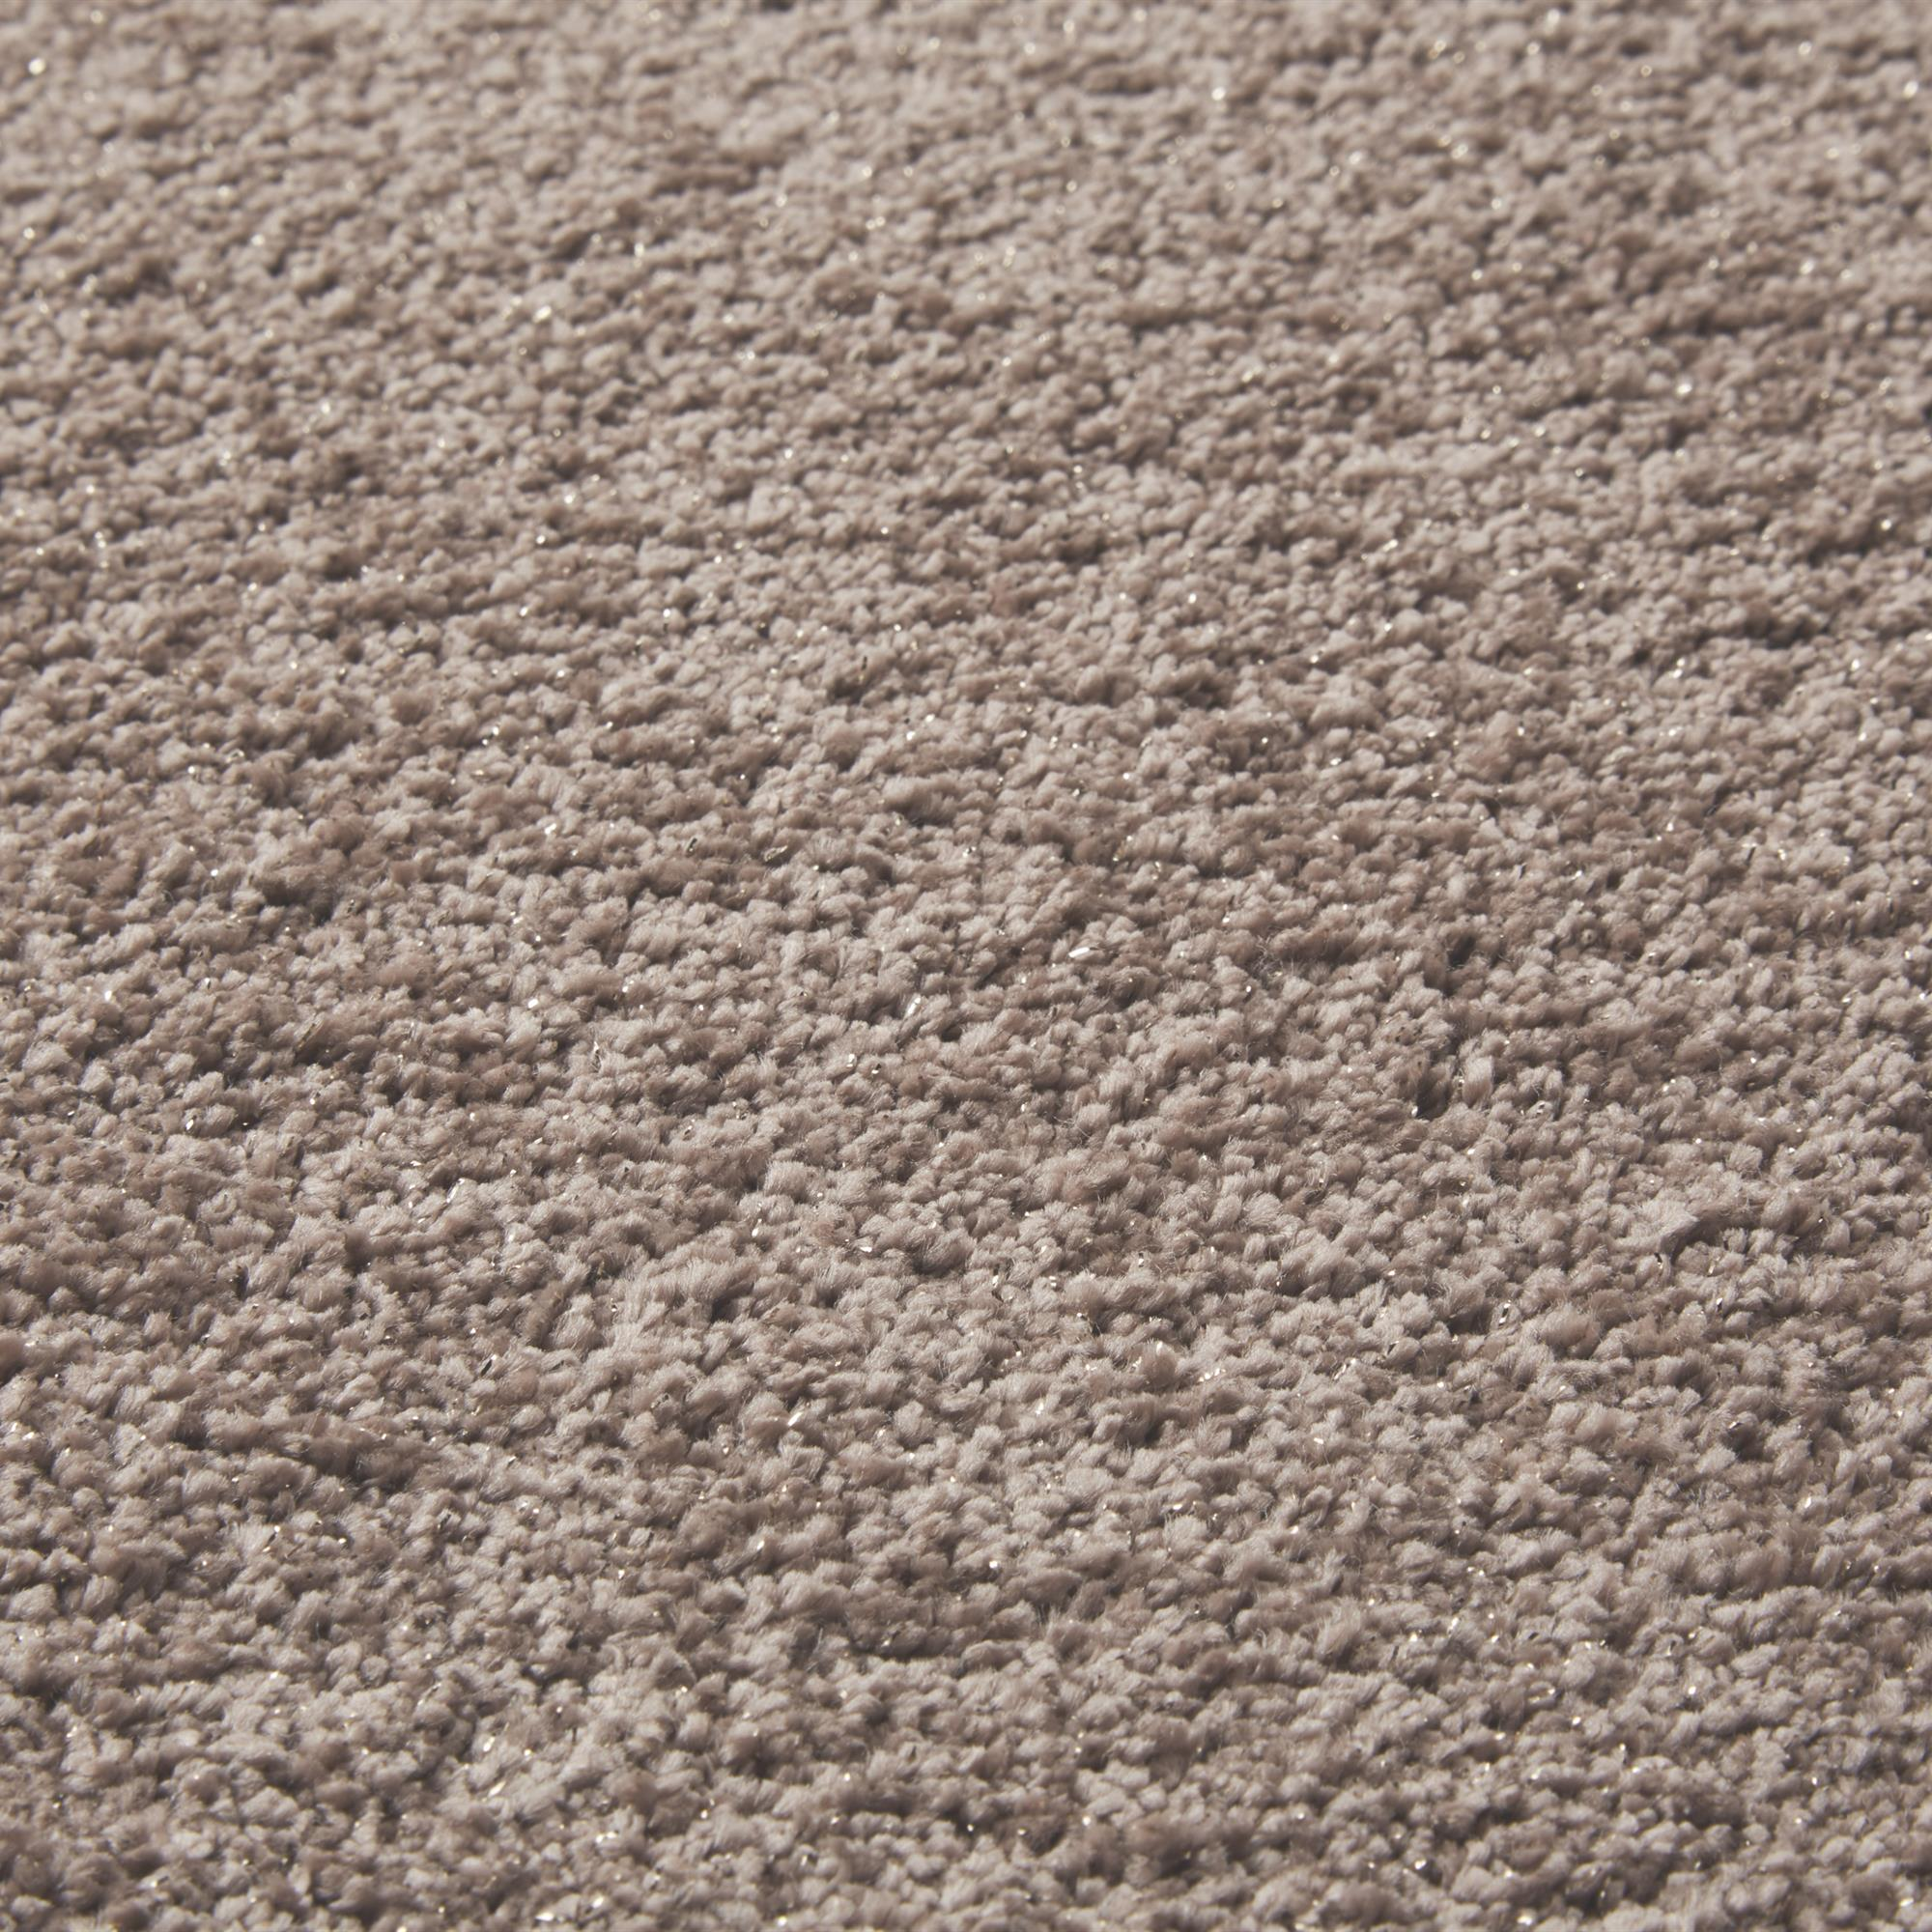 Associated Weavers Proxima Carpet, 34 Aztec, swatch